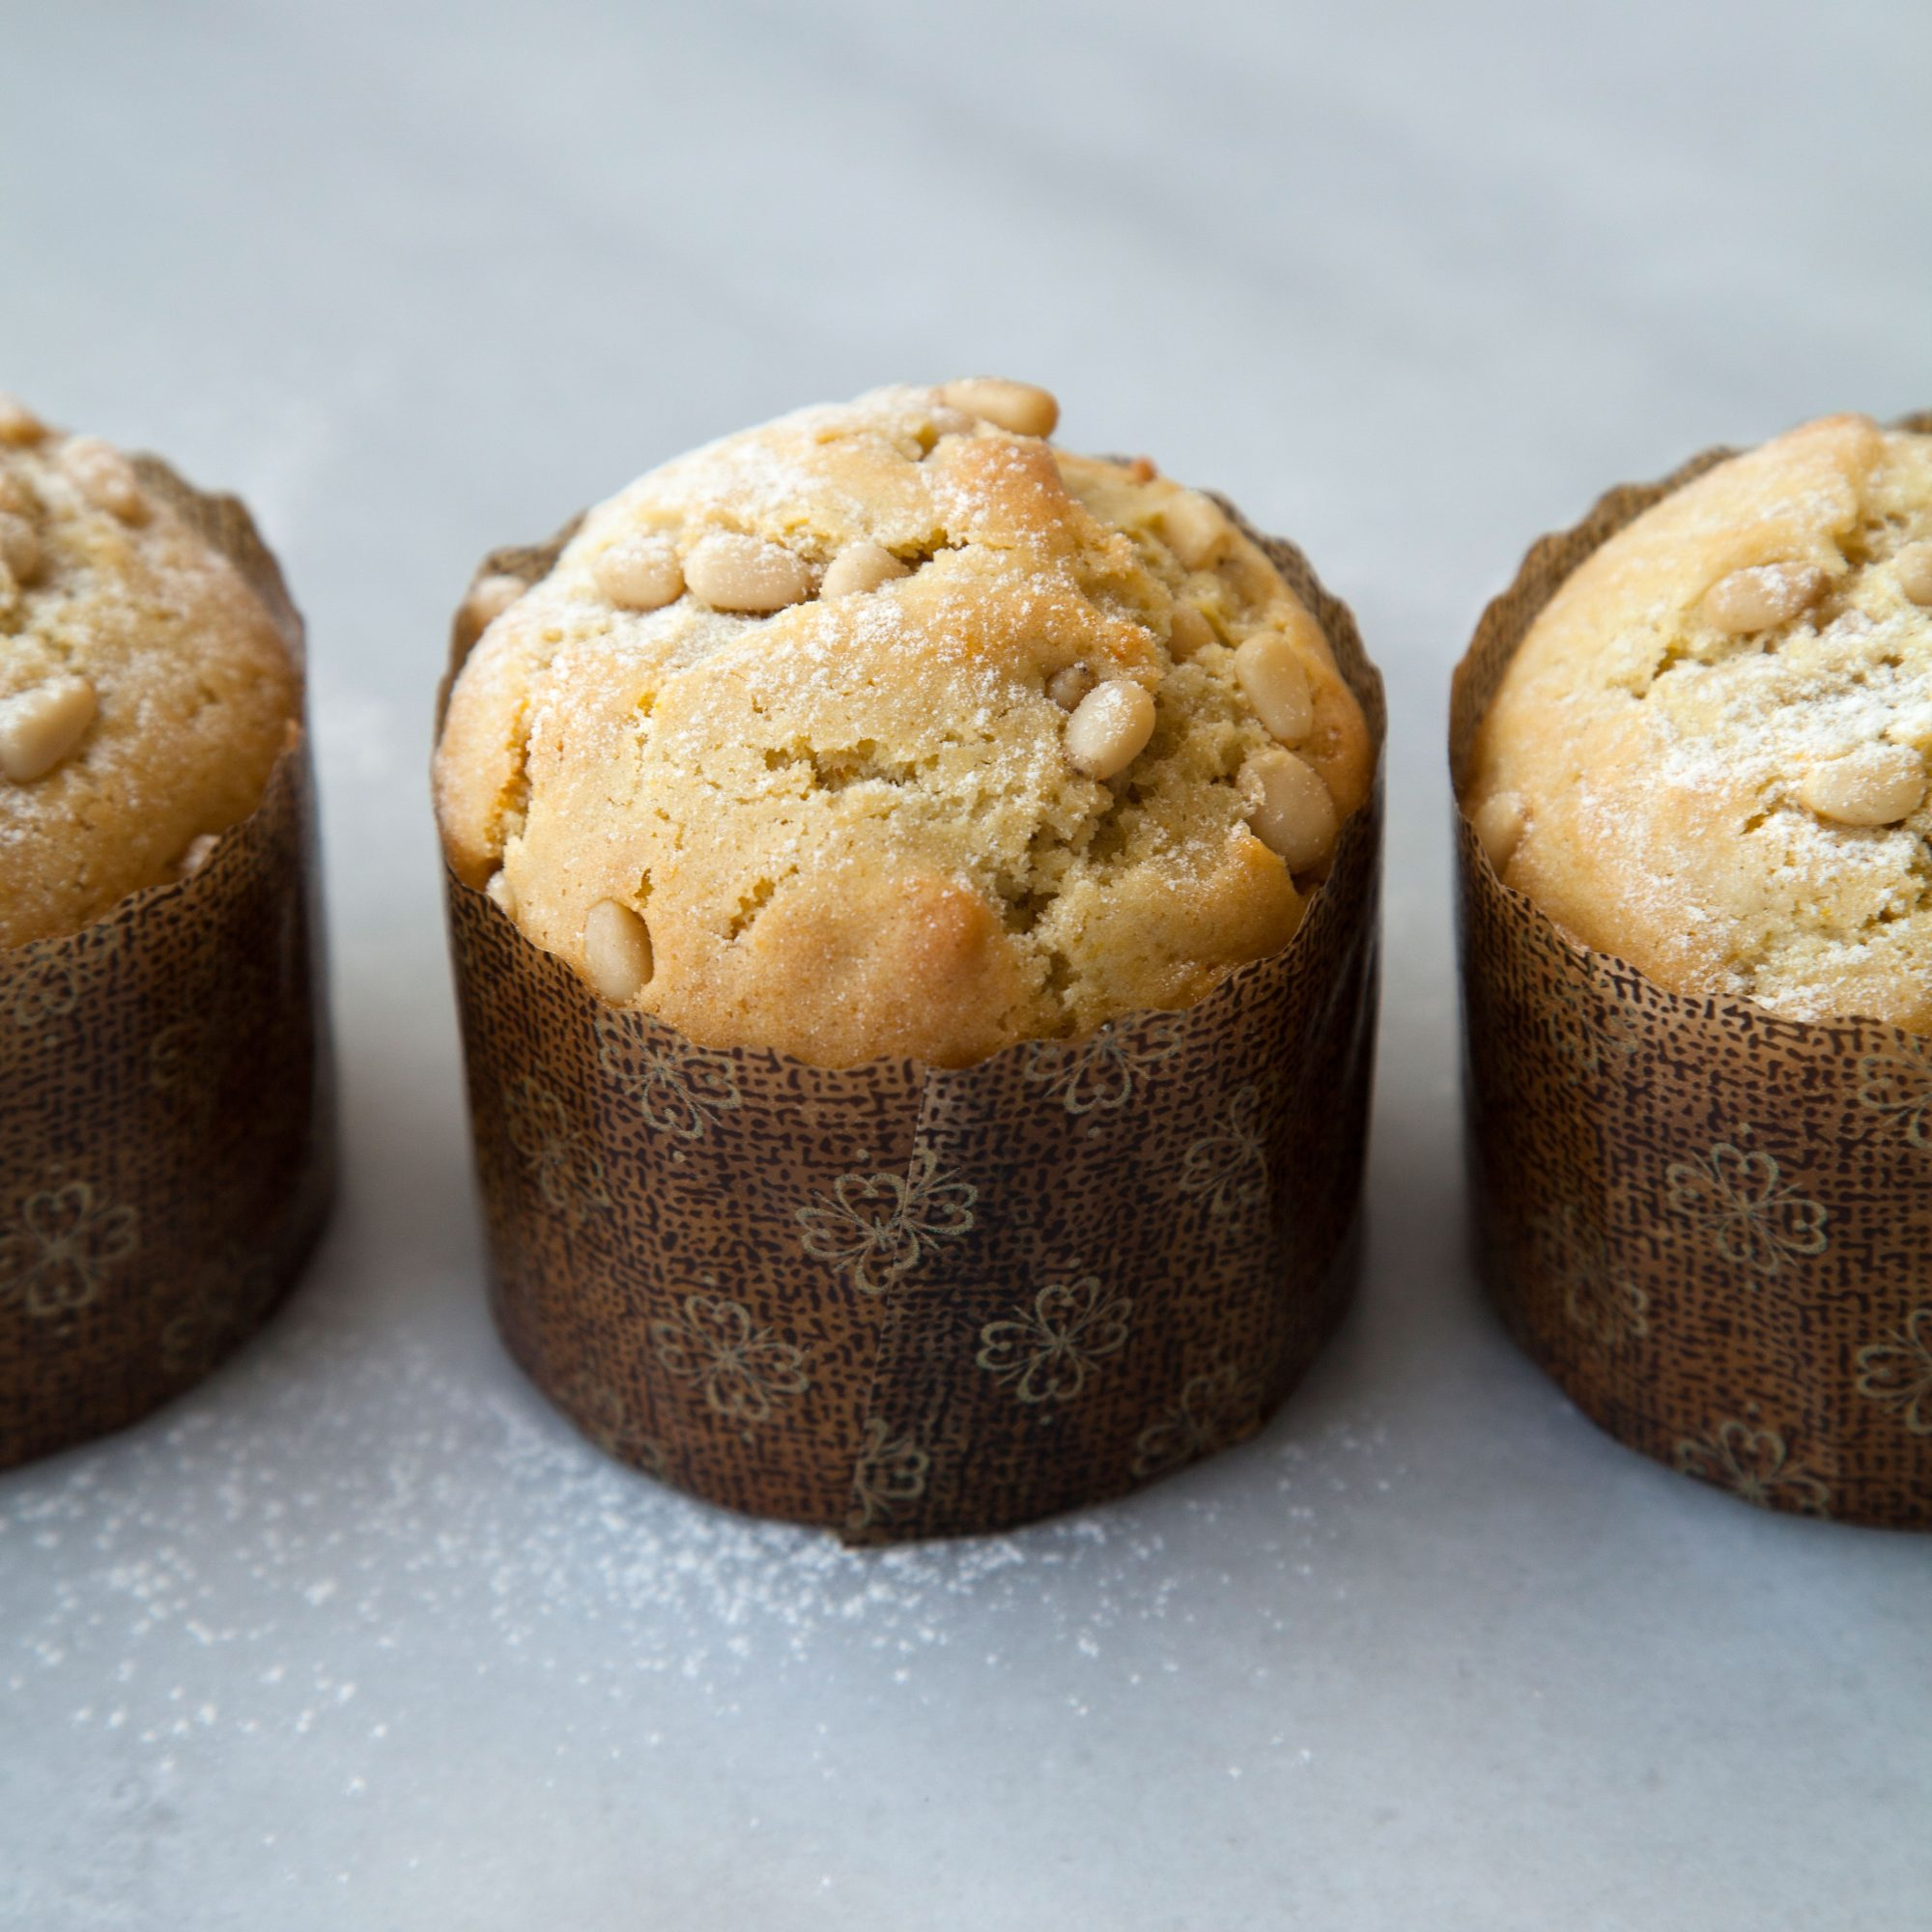 Olive Oil Muffins with Pine Nuts